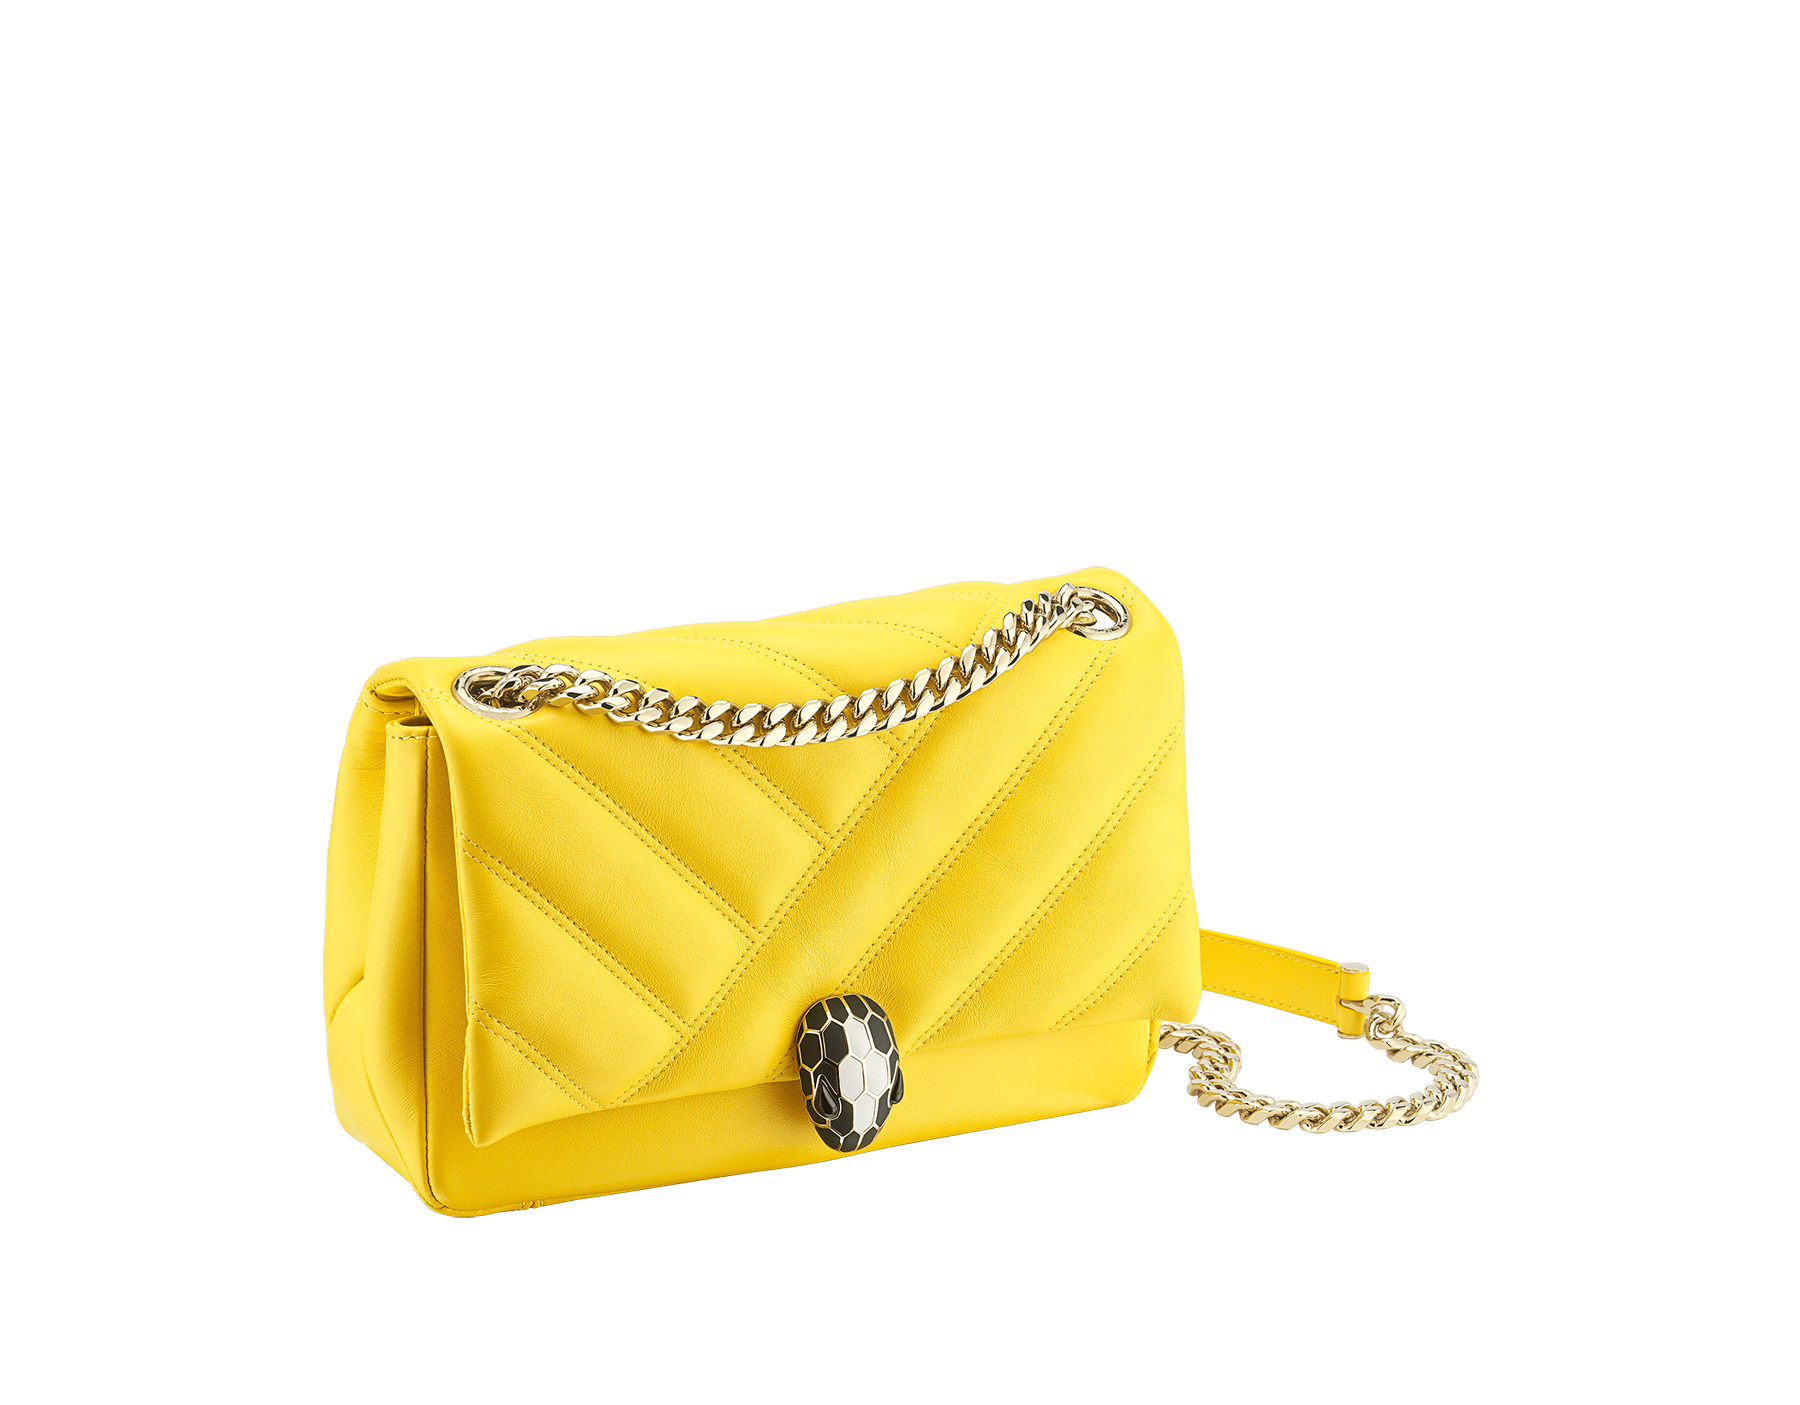 """Serpenti Cabochon"" shoulder bag in soft quilted daisy topaz calf leather, with a graphic motif. Brass light gold plated tempting snakehead closure in matte black and shiny white enamel and black onyx eyes. 290231 image 2"